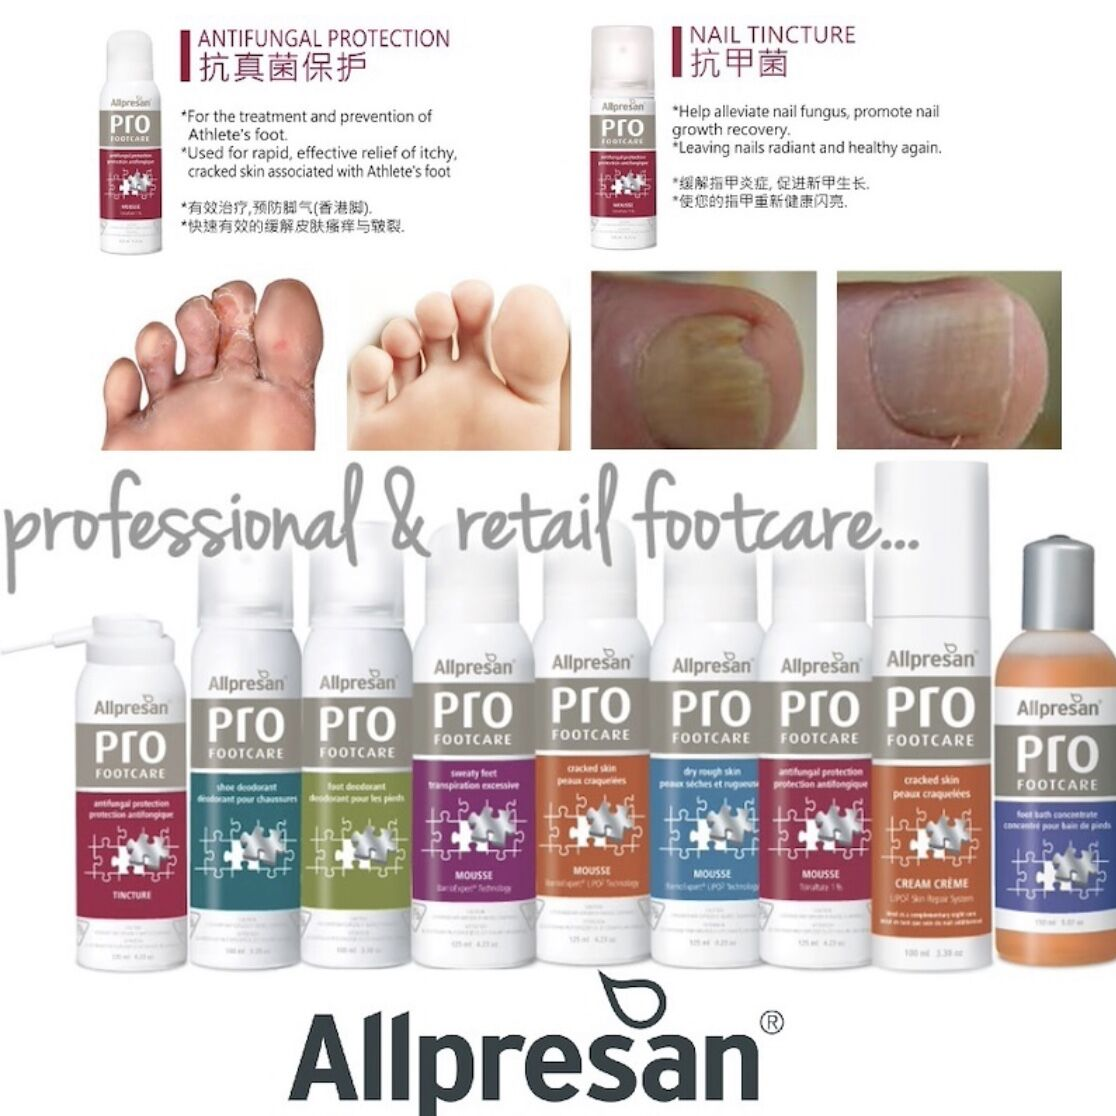 Allpresan Pro Footcare - Healthy Anti Fungal Nails Tincture | Cracked Skin | Dry Rough Skin |.